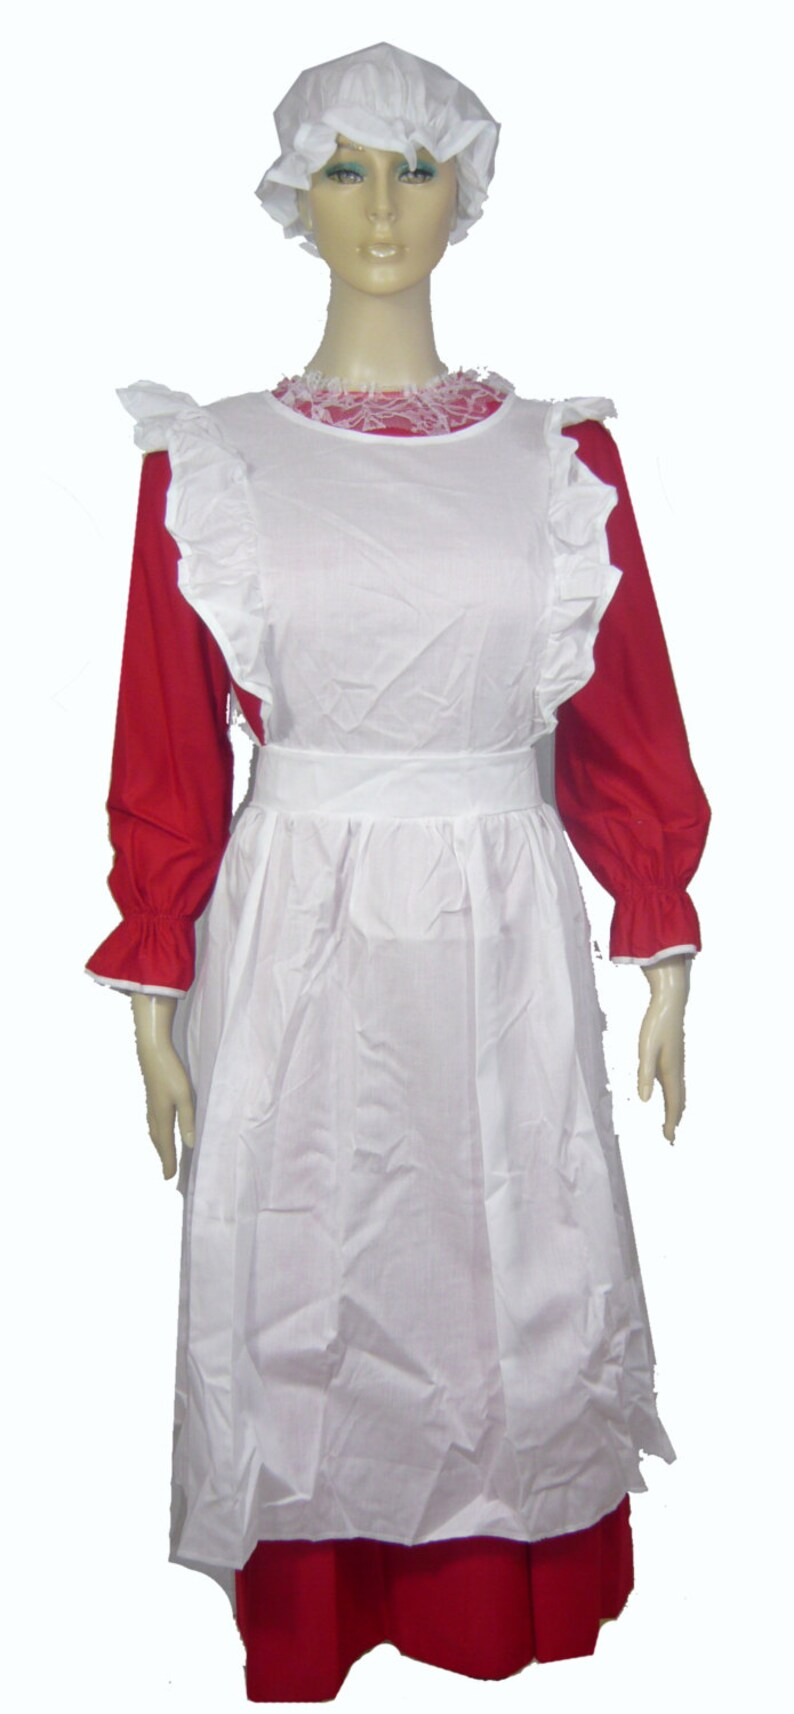 Christmas Outfit.Mrs Claus Santa Christmas Outfit Costume Dress Size Medium Dc0105